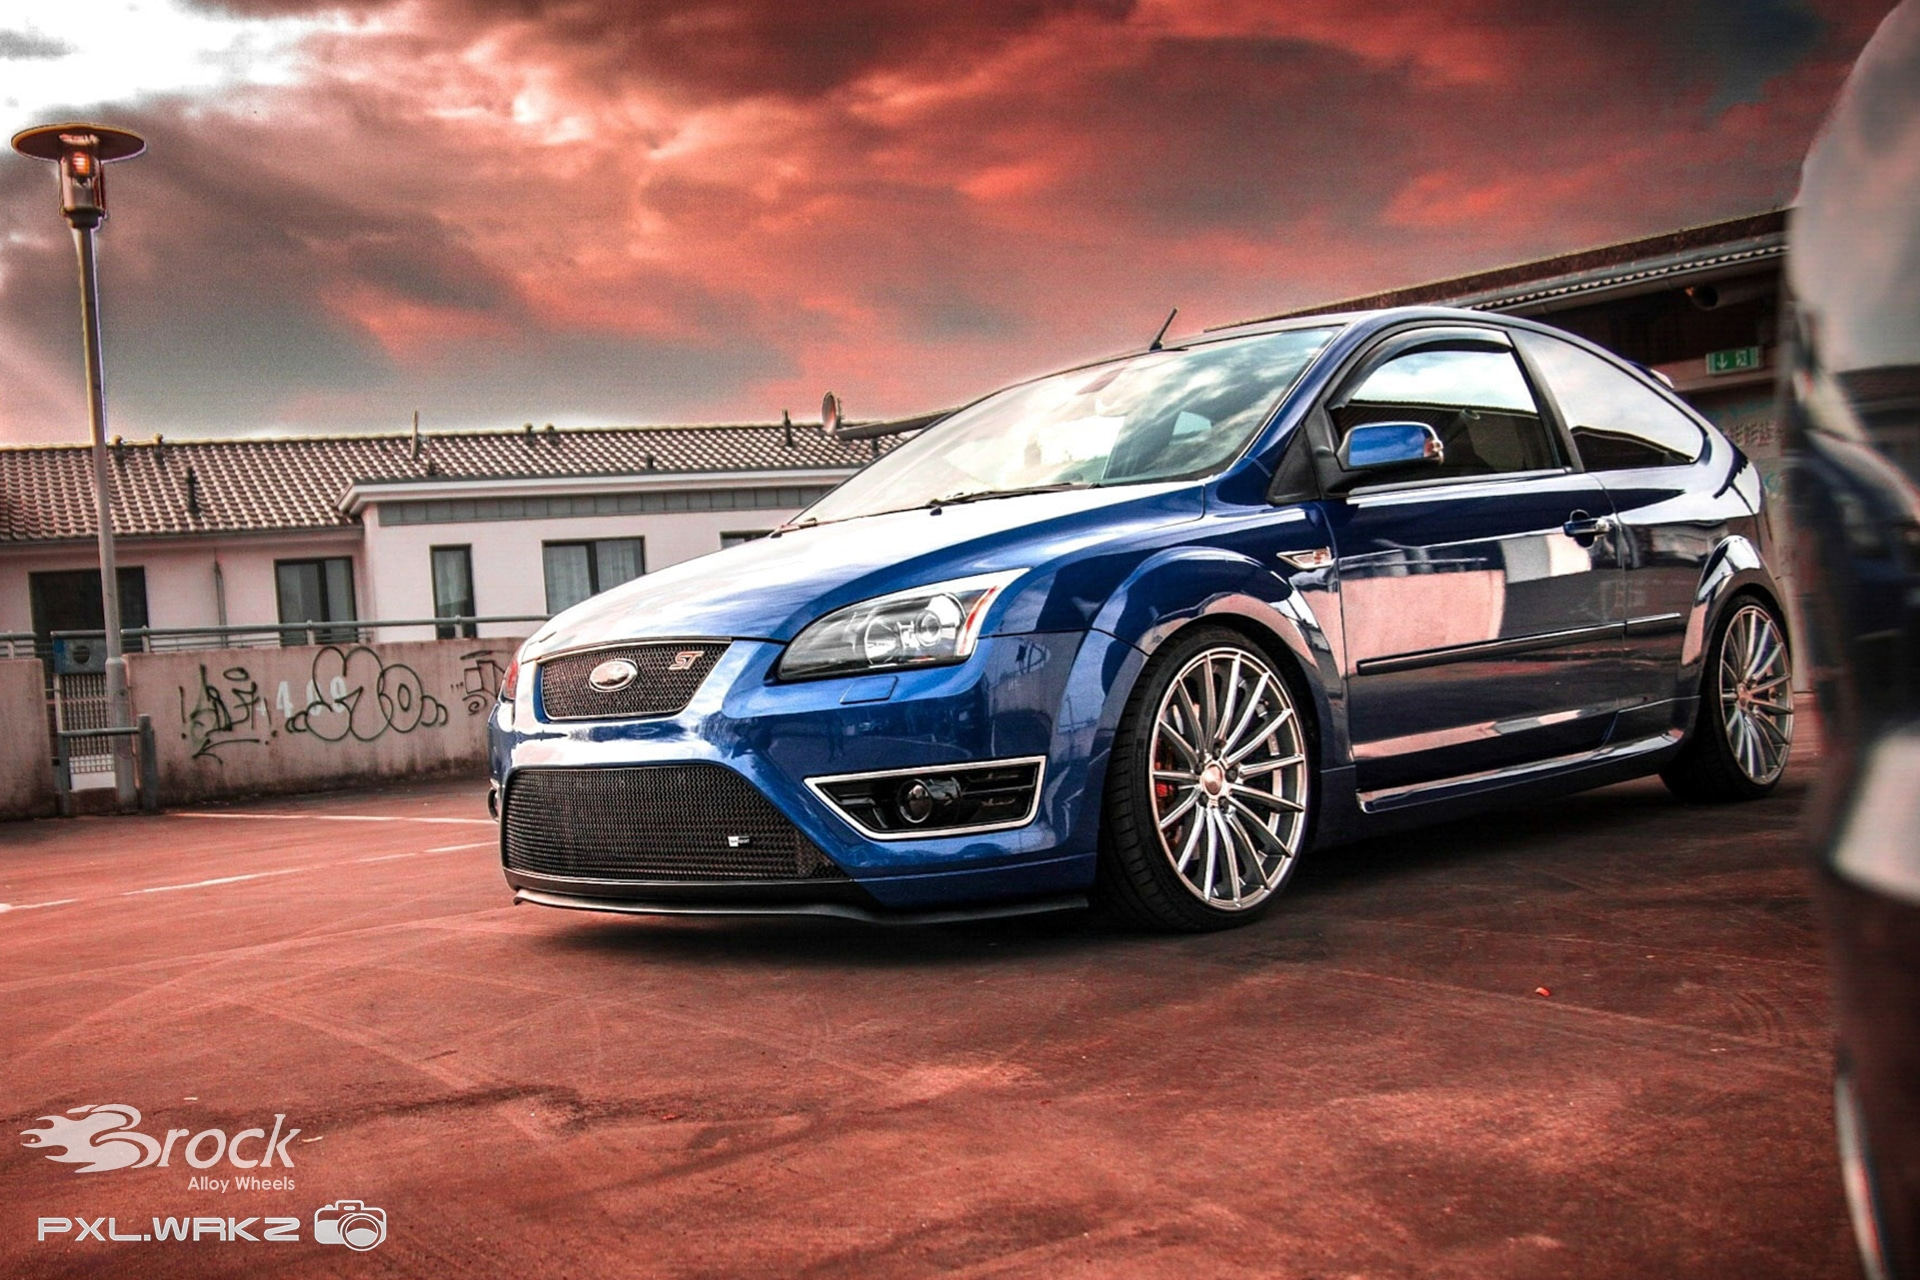 Ford Focus ST Brock B36 HS Felge